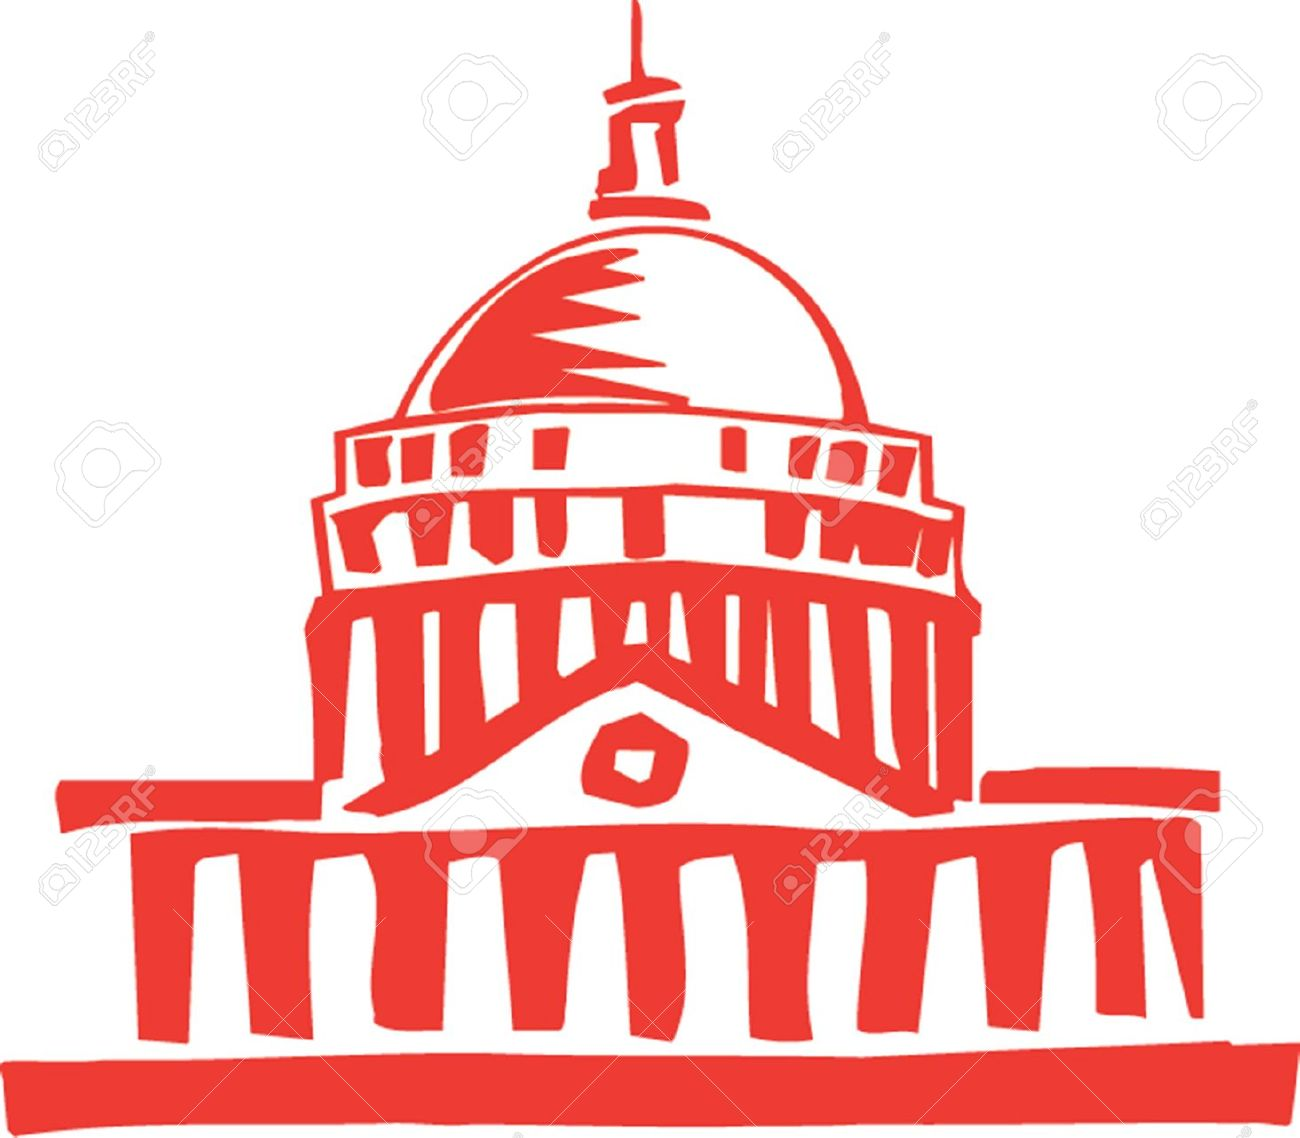 Us capitol clip art graphic black and white download 614 Us Capitol Stock Illustrations, Cliparts And Royalty Free Us ... graphic black and white download